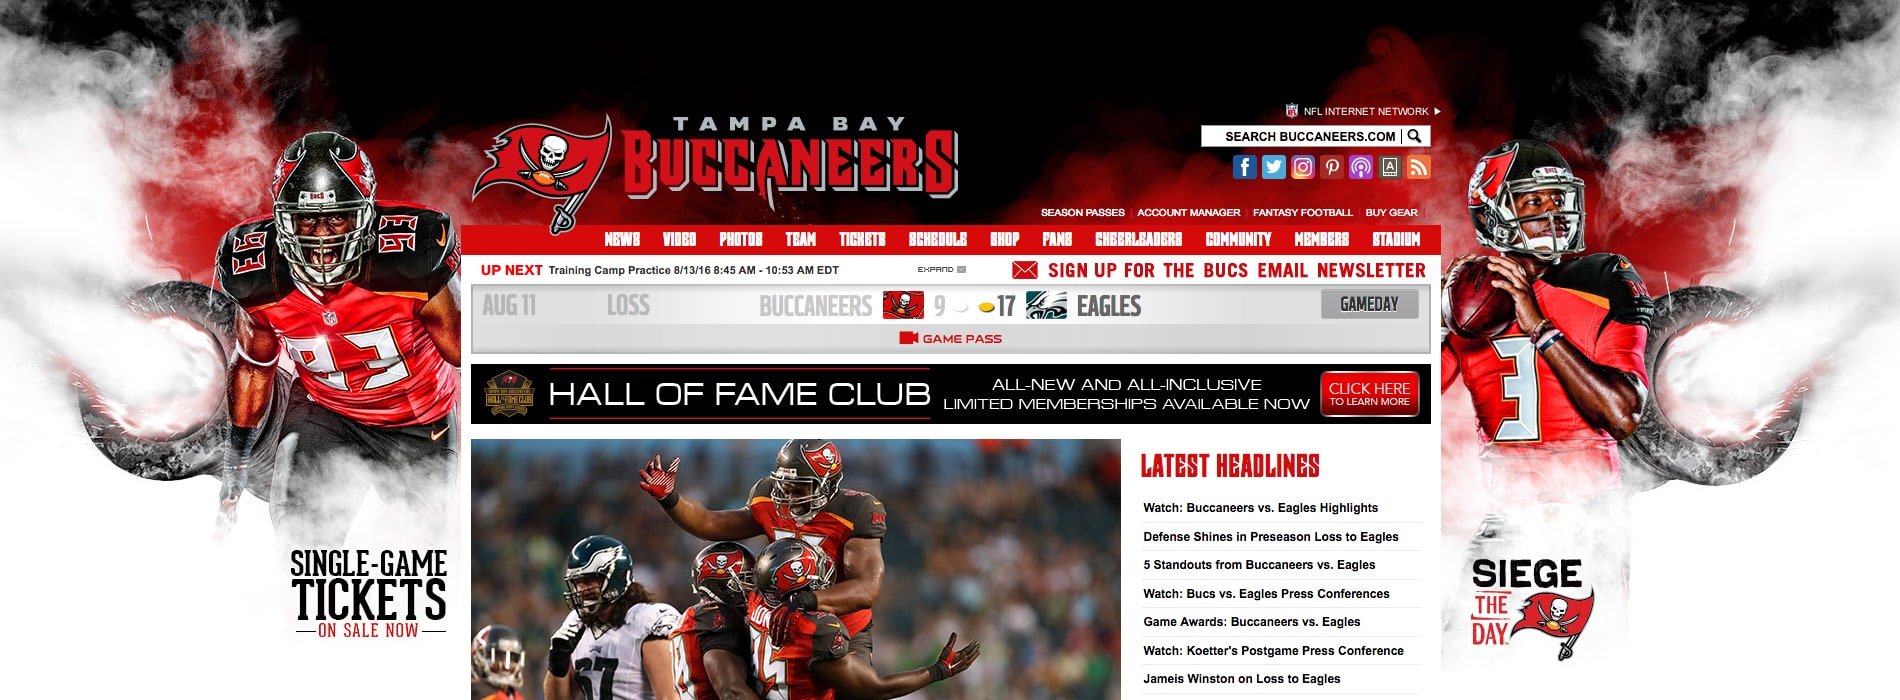 Image of Tampa Bay Buccaneers website with Siege the Day artwork